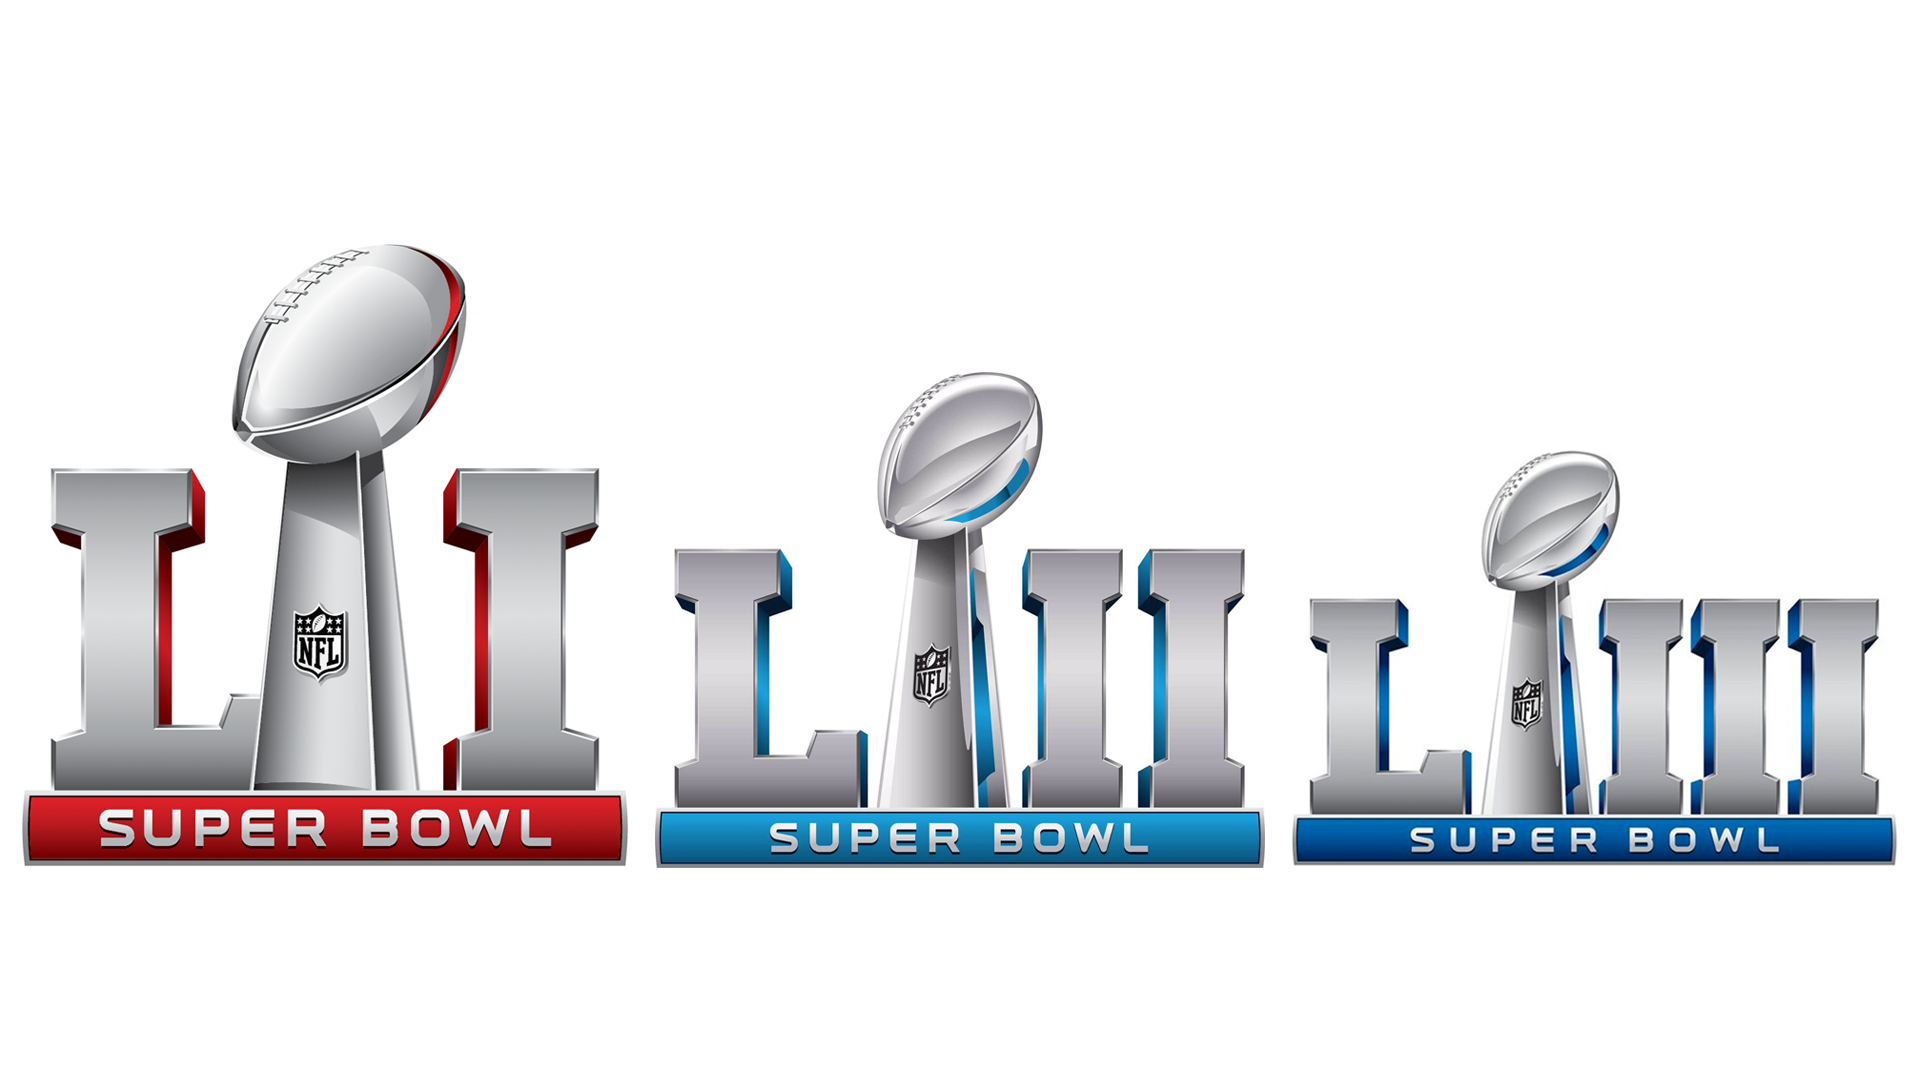 Super Bowl logo has become \'corporate, soulless\' like \'NFL.